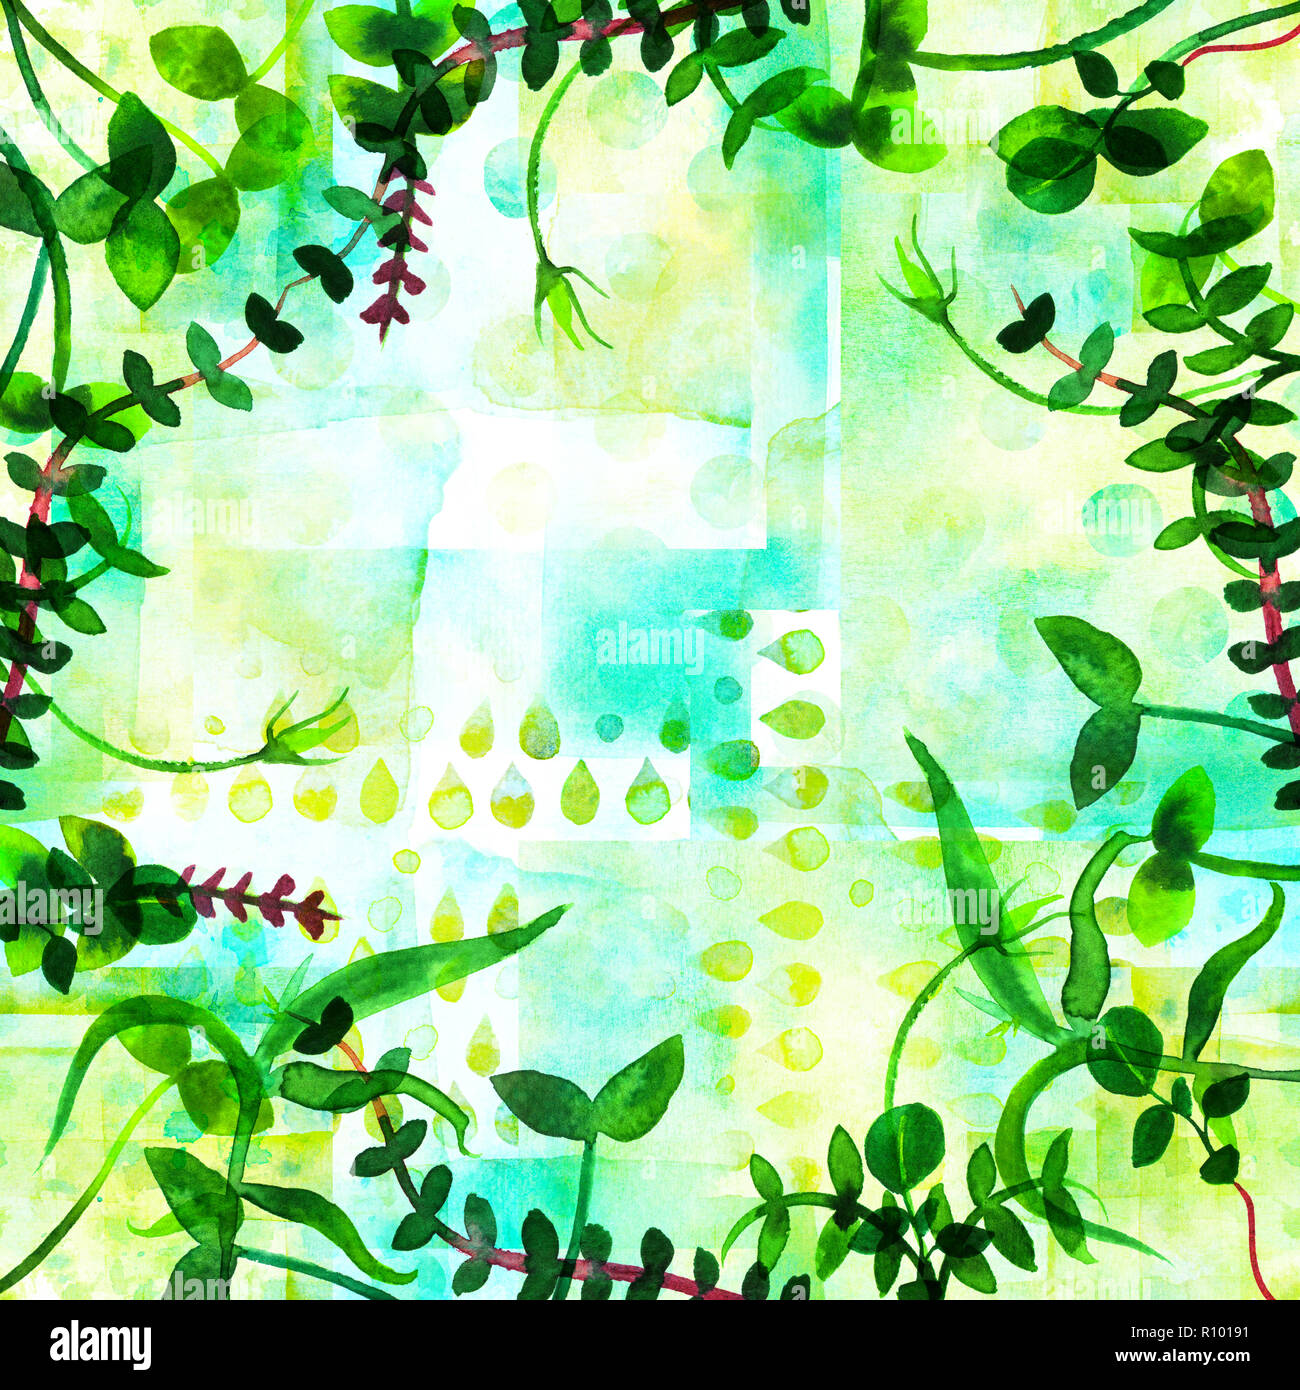 A frame with fresh green sprouts and copy space. Watercolor branches and leaves, forming a border for a spring design with a place for text - Stock Image